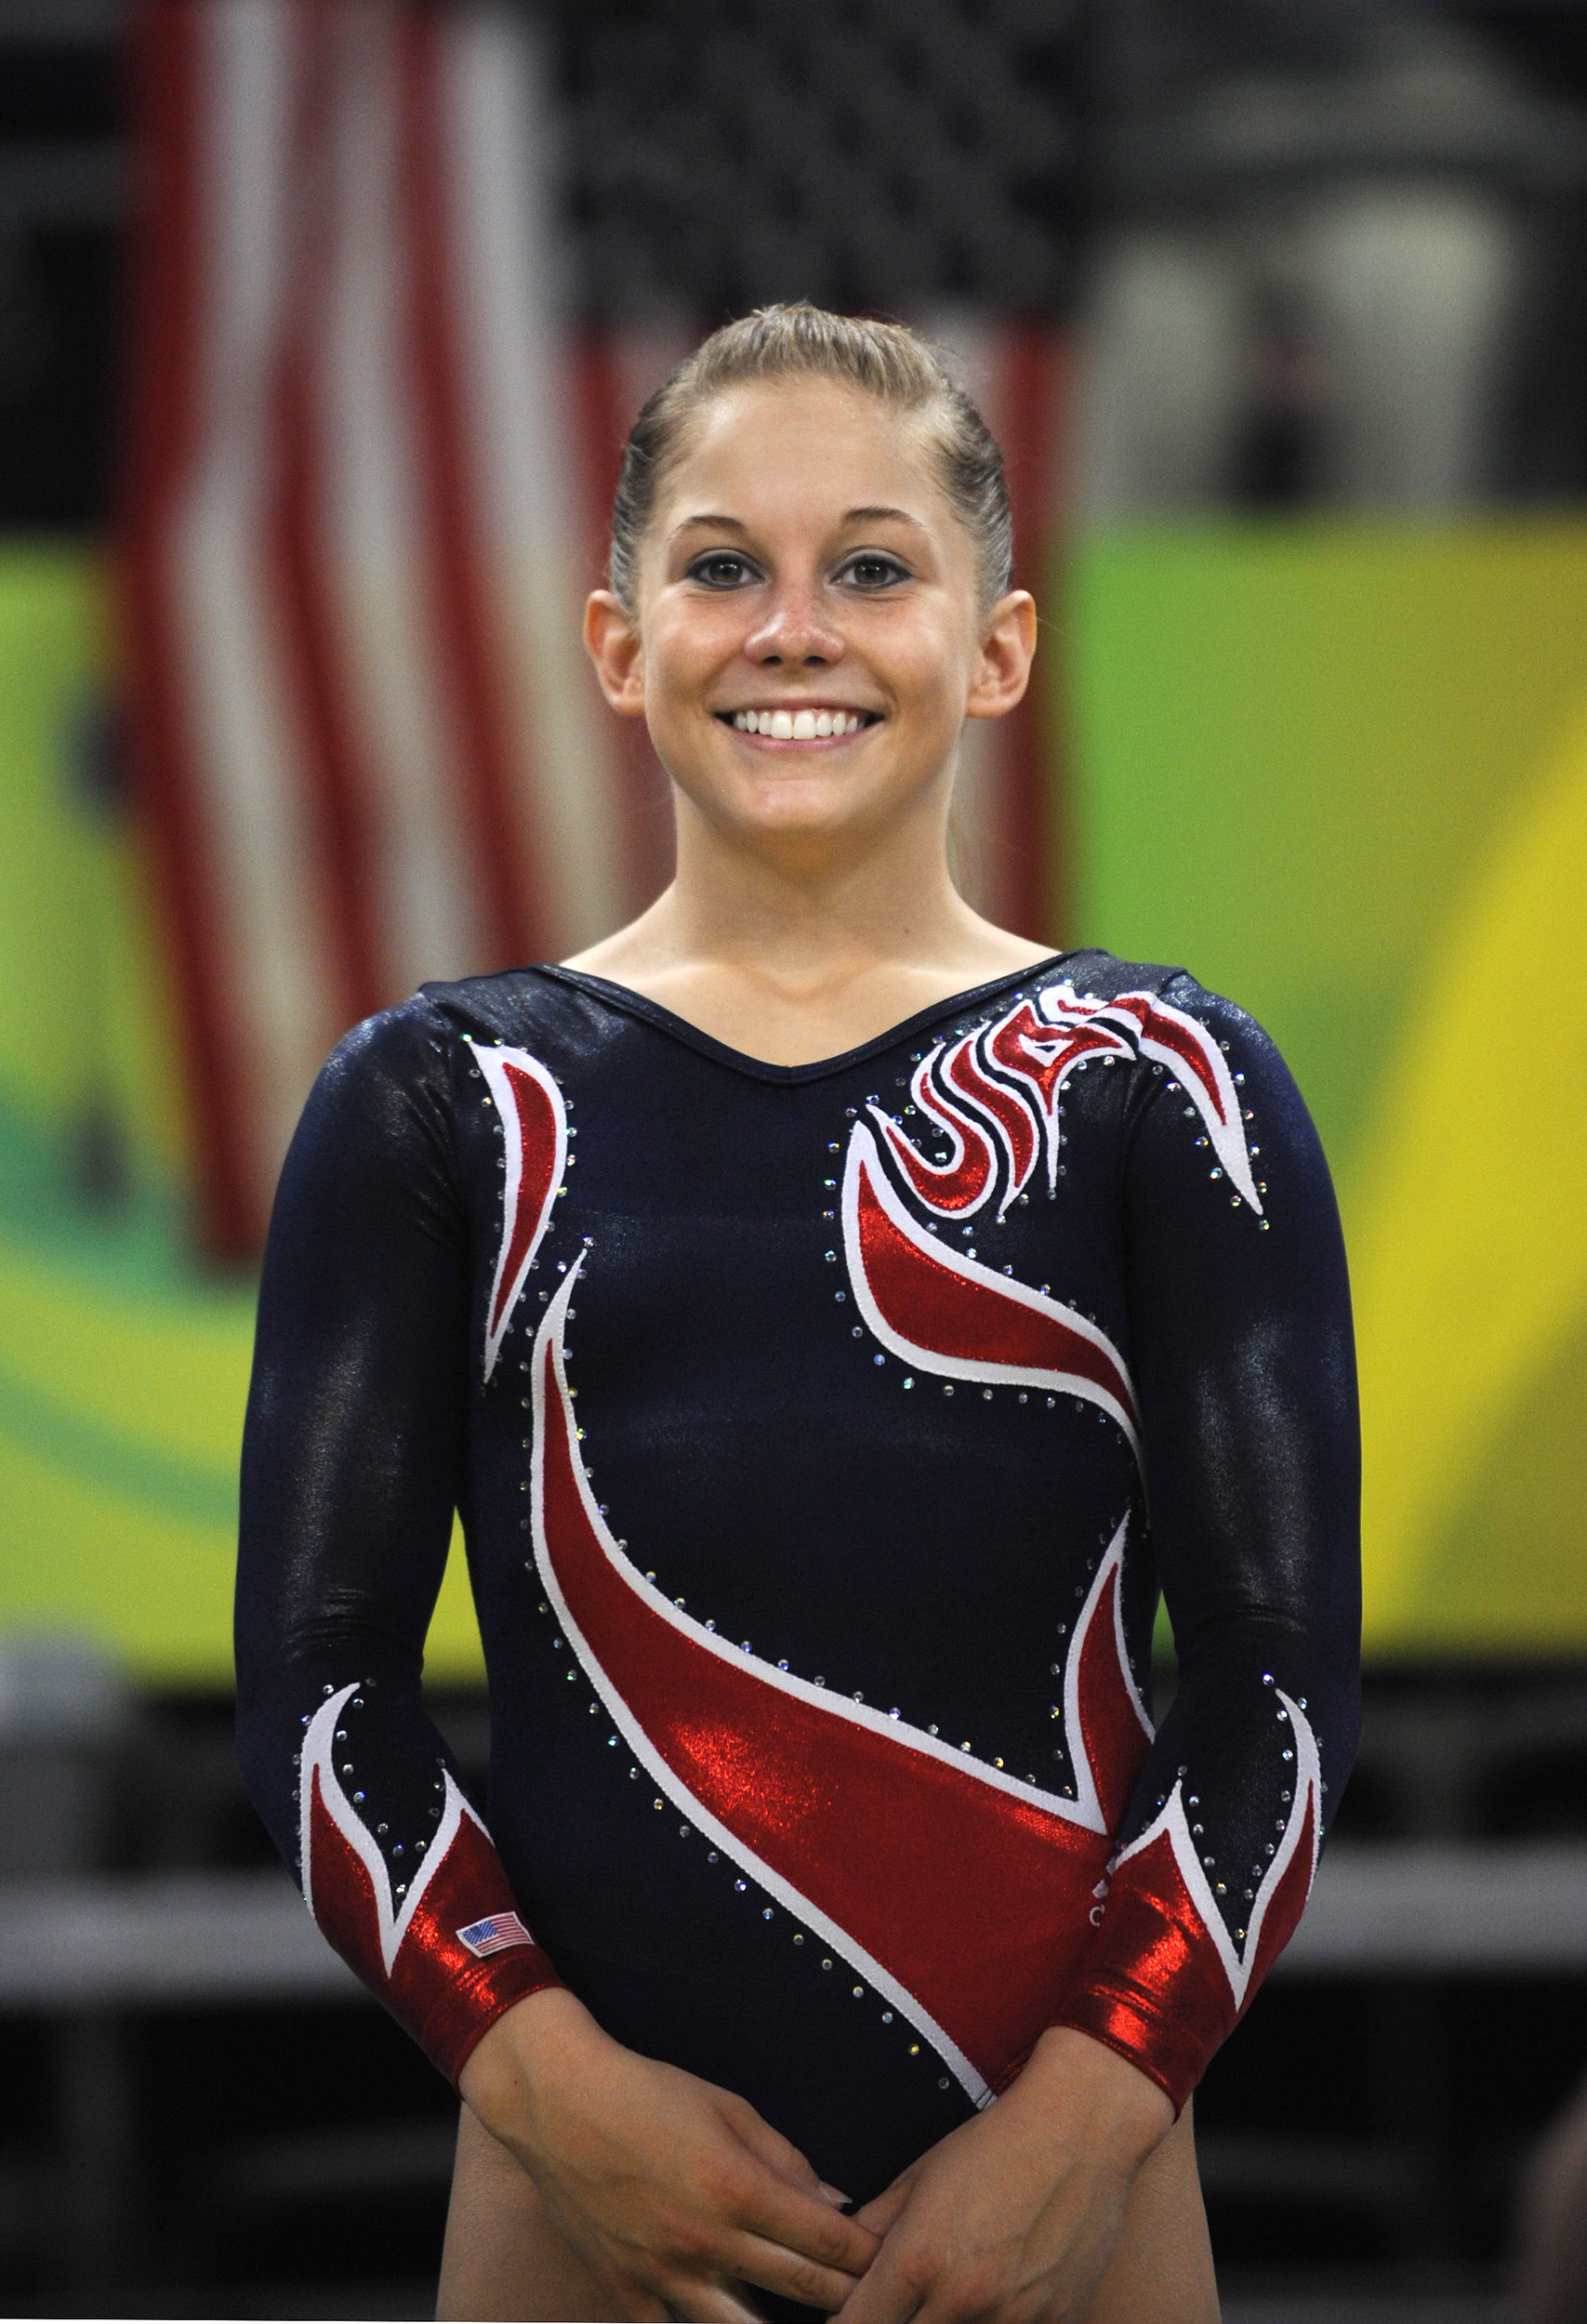 picture Shawn Johnson 4 Olympic medals in gymnastics